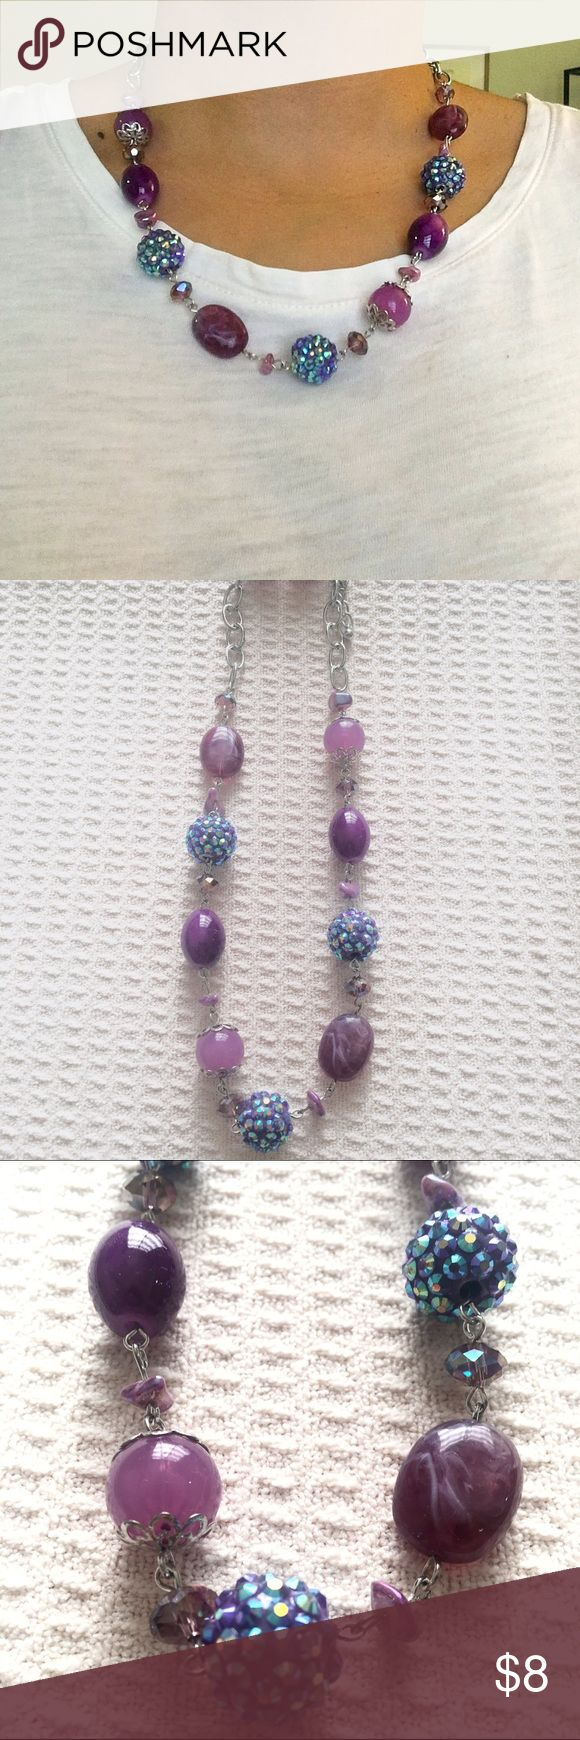 Charming Charlie Necklace Set Avail Lilac + Aqua Short Charming Charlie Necklace set with earrings. Dresses up any outfit. Available in lilac-silver and aqua-silver. New, never worn. Happy to provide additional info/pics. Offers welcome 💜💙 Charming Charlie Jewelry Necklaces